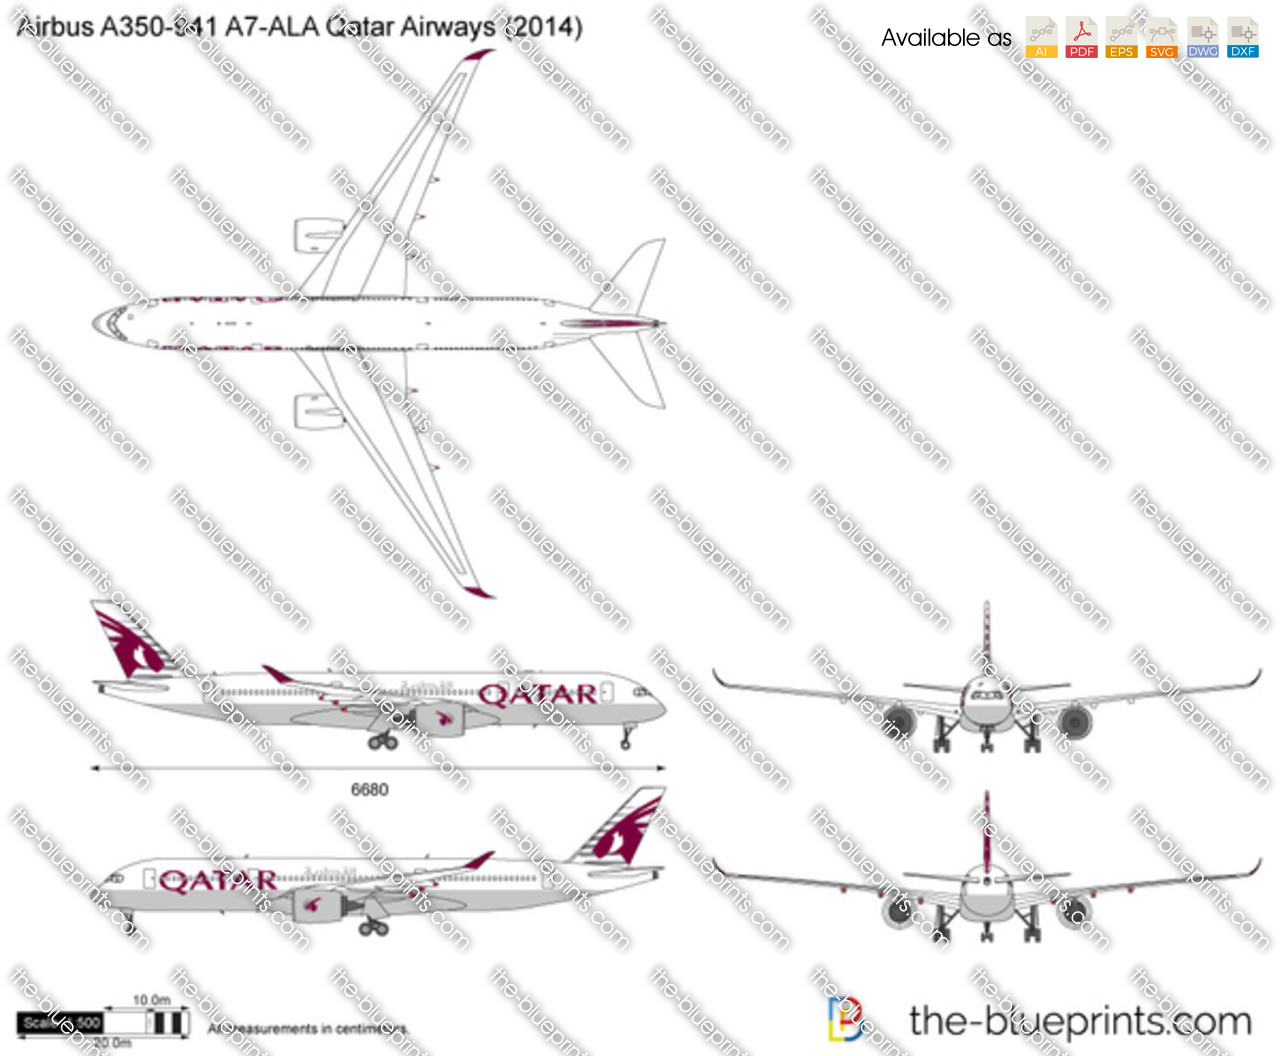 Airbus A350-941 A7-ALA Qatar Airways 2015